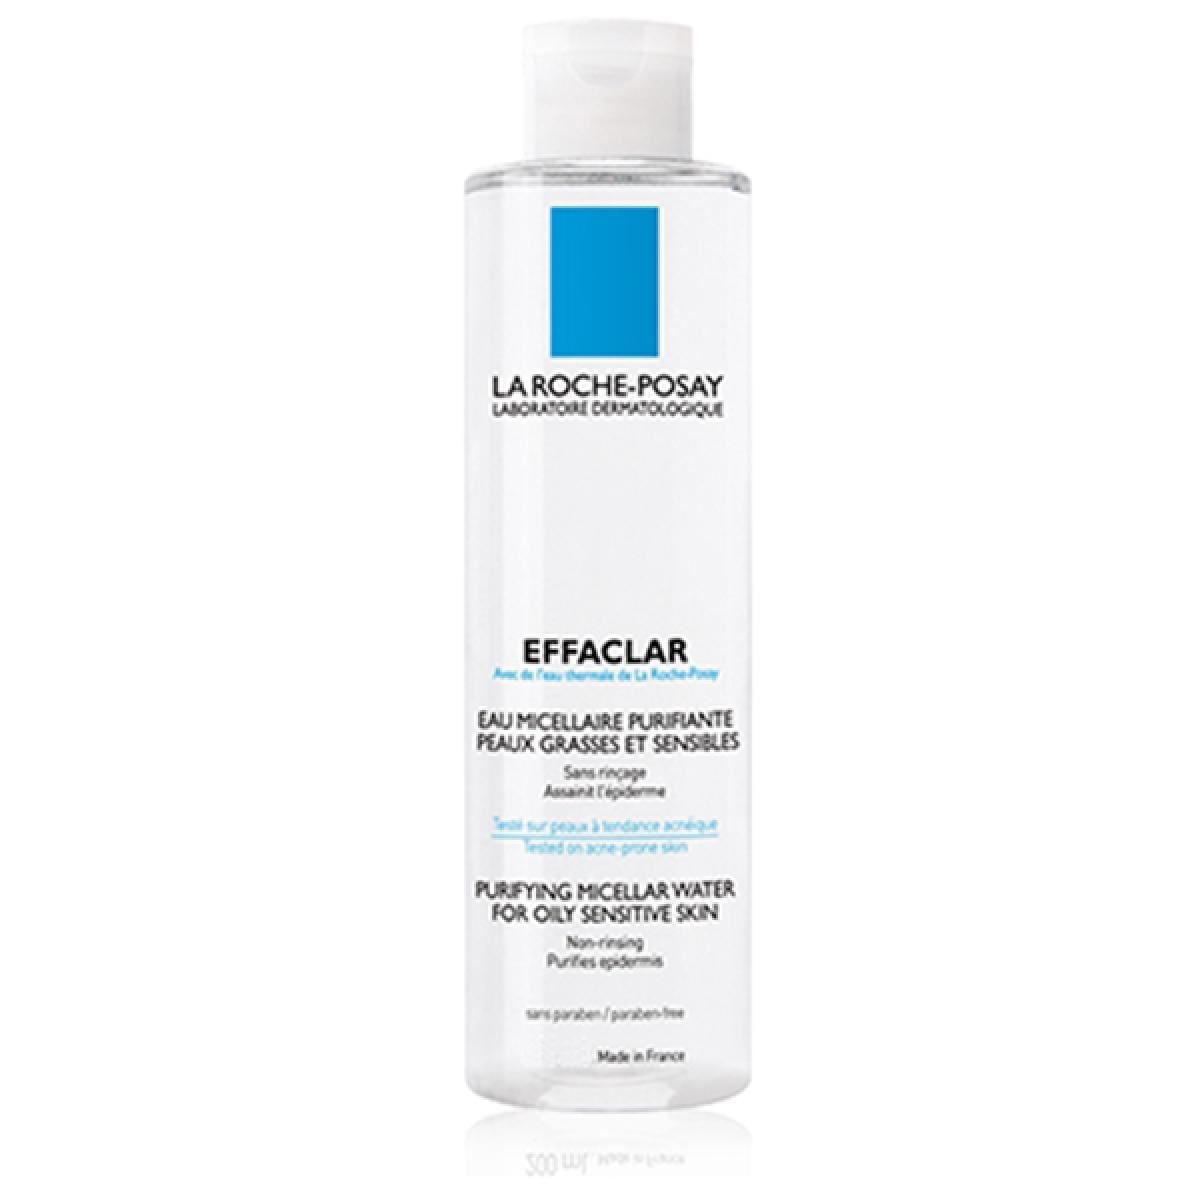 la roche posay effaclar eau micellaire 400ml wefit. Black Bedroom Furniture Sets. Home Design Ideas